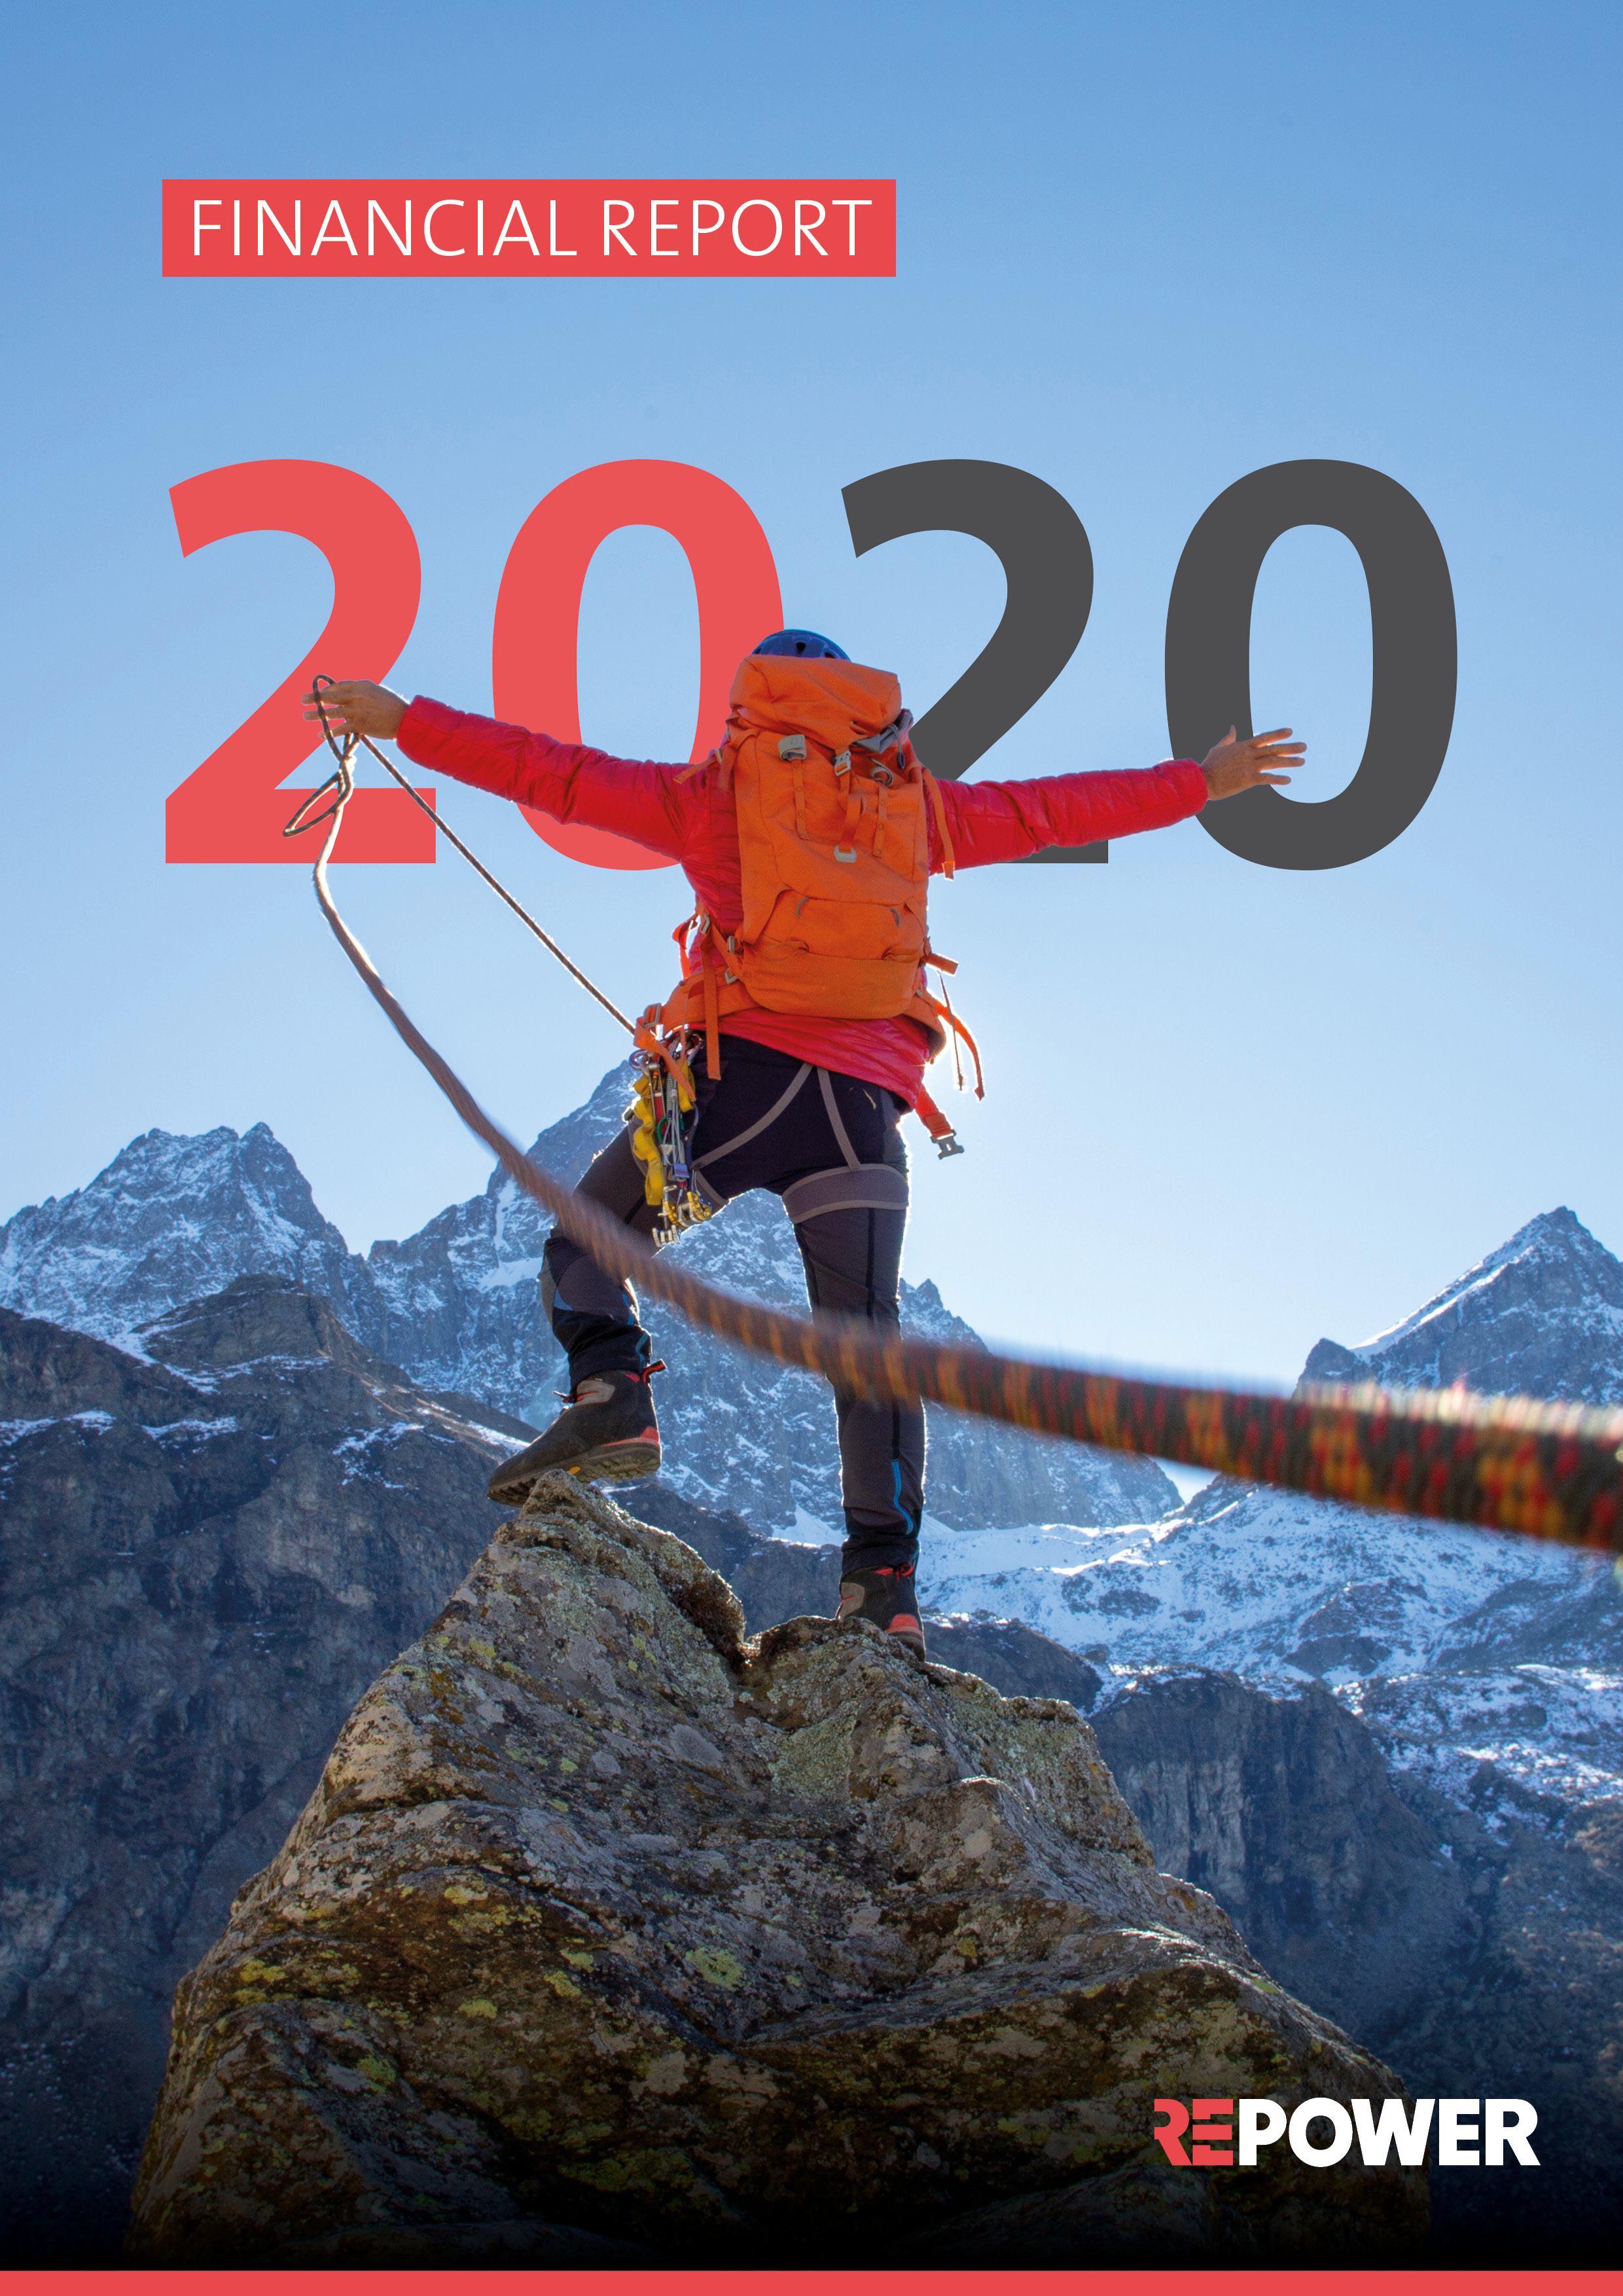 Annual Report 2020 – Financial report preview